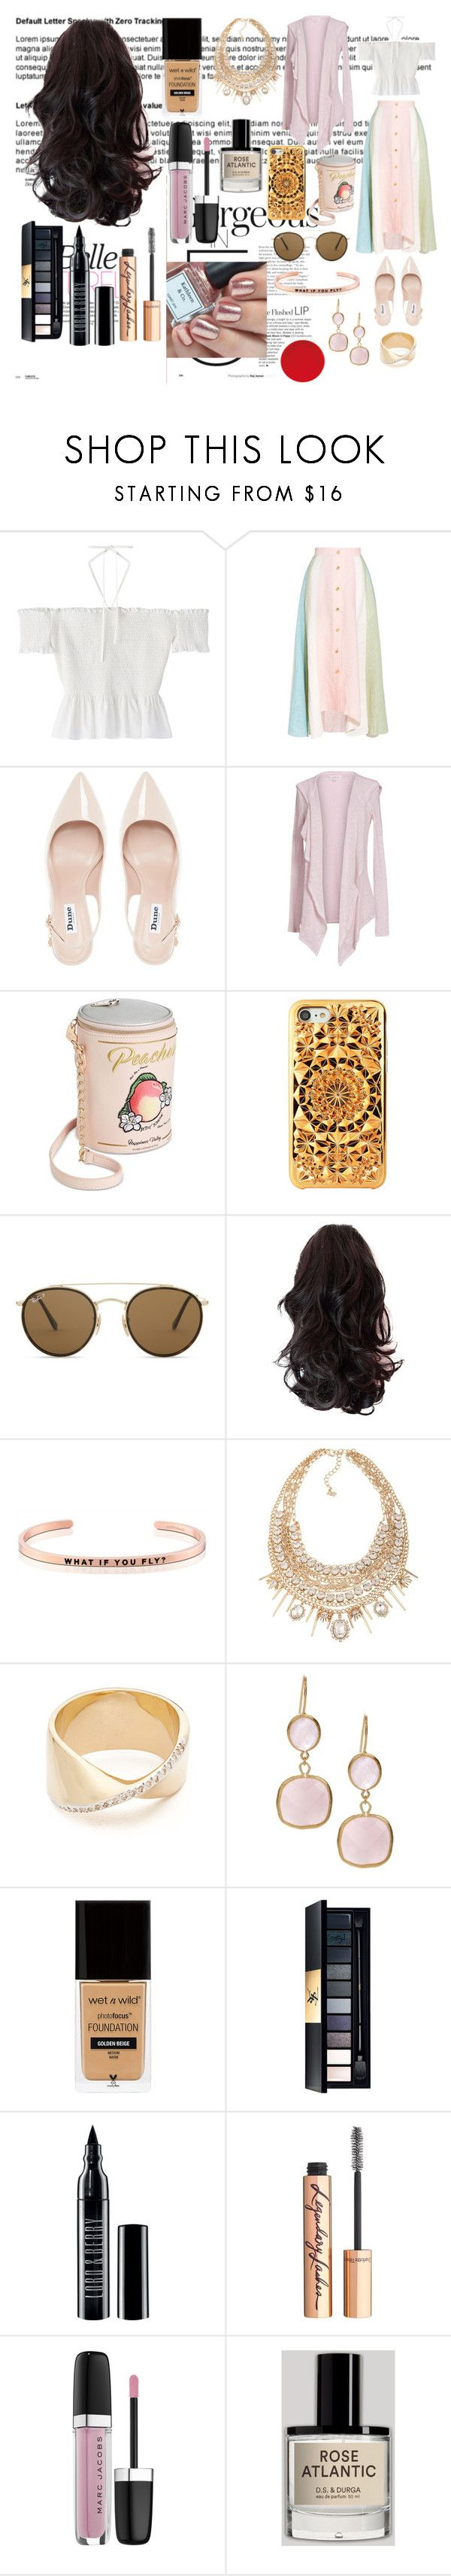 """""""What if you fly?"""" by it-srabina ❤ liked on Polyvore featuring Peter Pilotto, Dune, Velvet by Graham & Spencer, Betsey Johnson, Felony Case, Ray-Ban, MantraBand, ABS by Allen Schwartz, Adina Reyter and Rivka Friedman"""